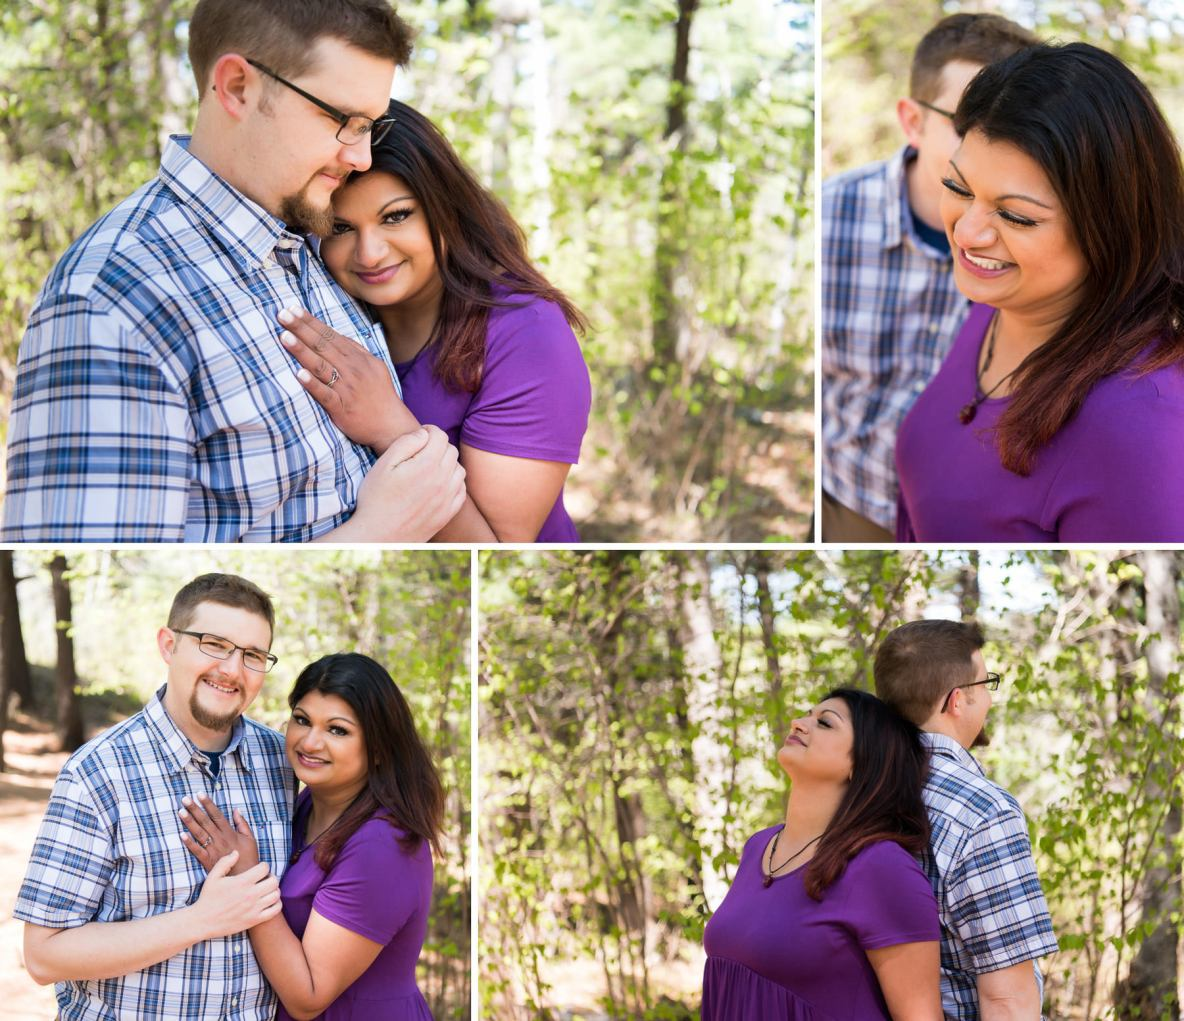 Photos of the engaged couple outside in nature with green trees in background.